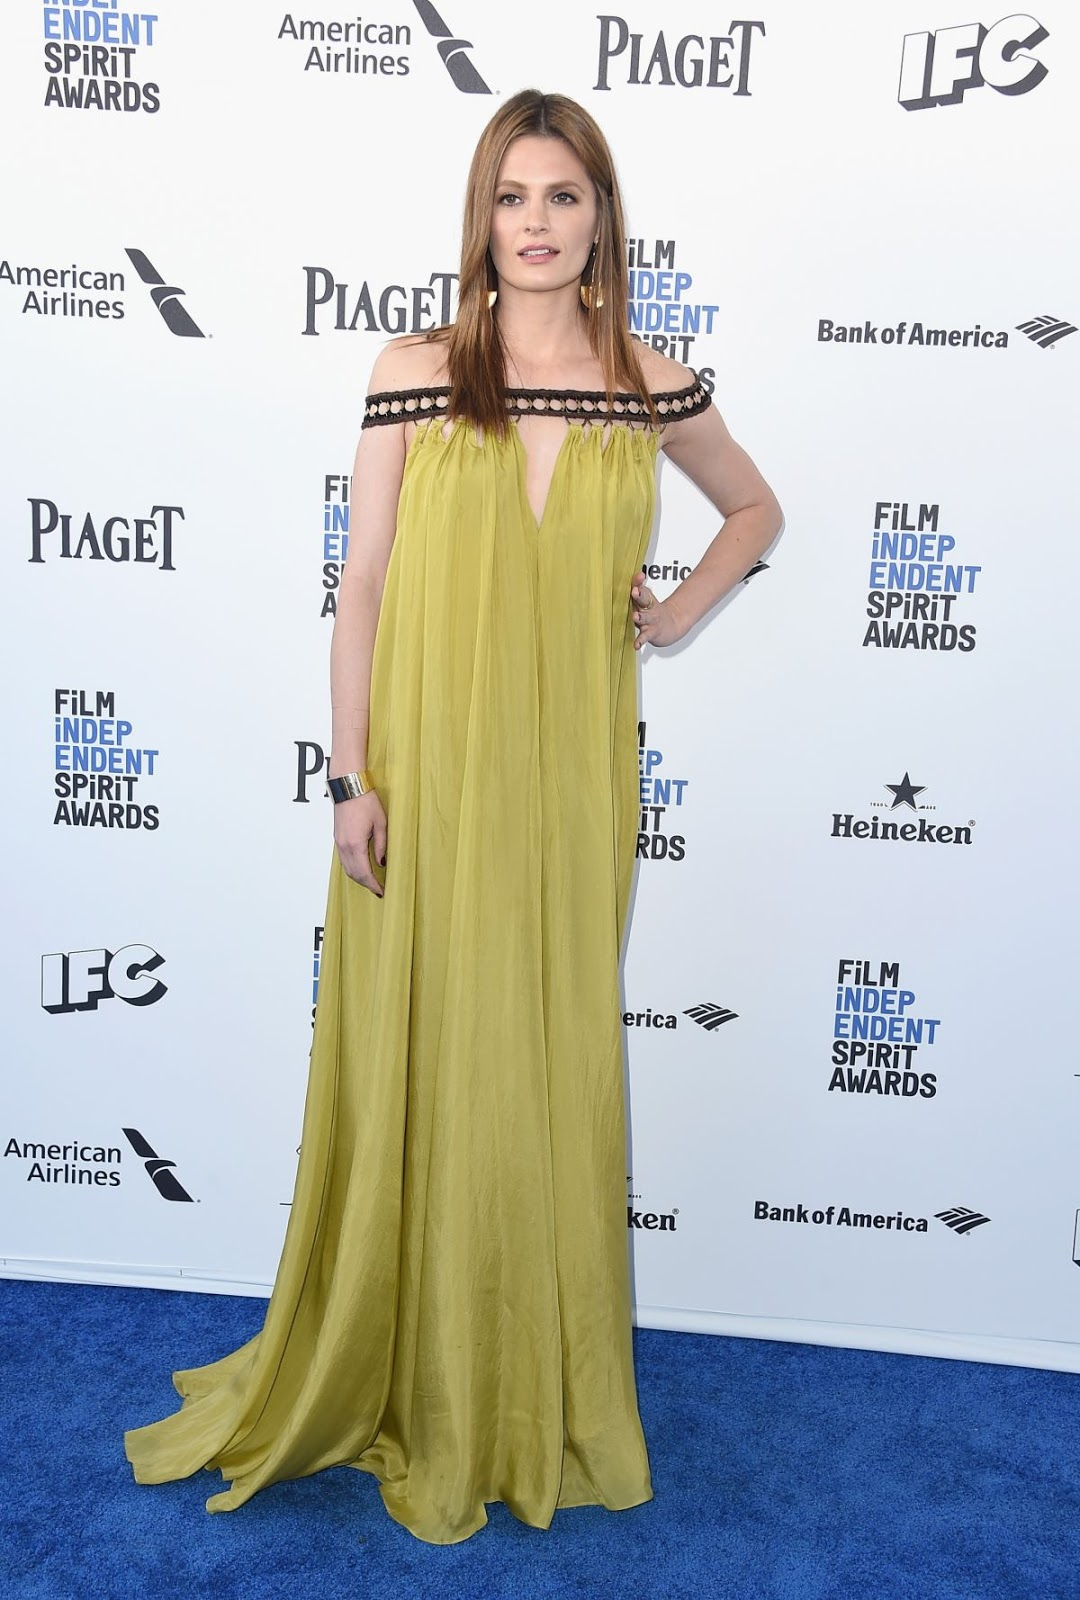 Stana Katic at Film Independent Spirit Awards in Santa Monica